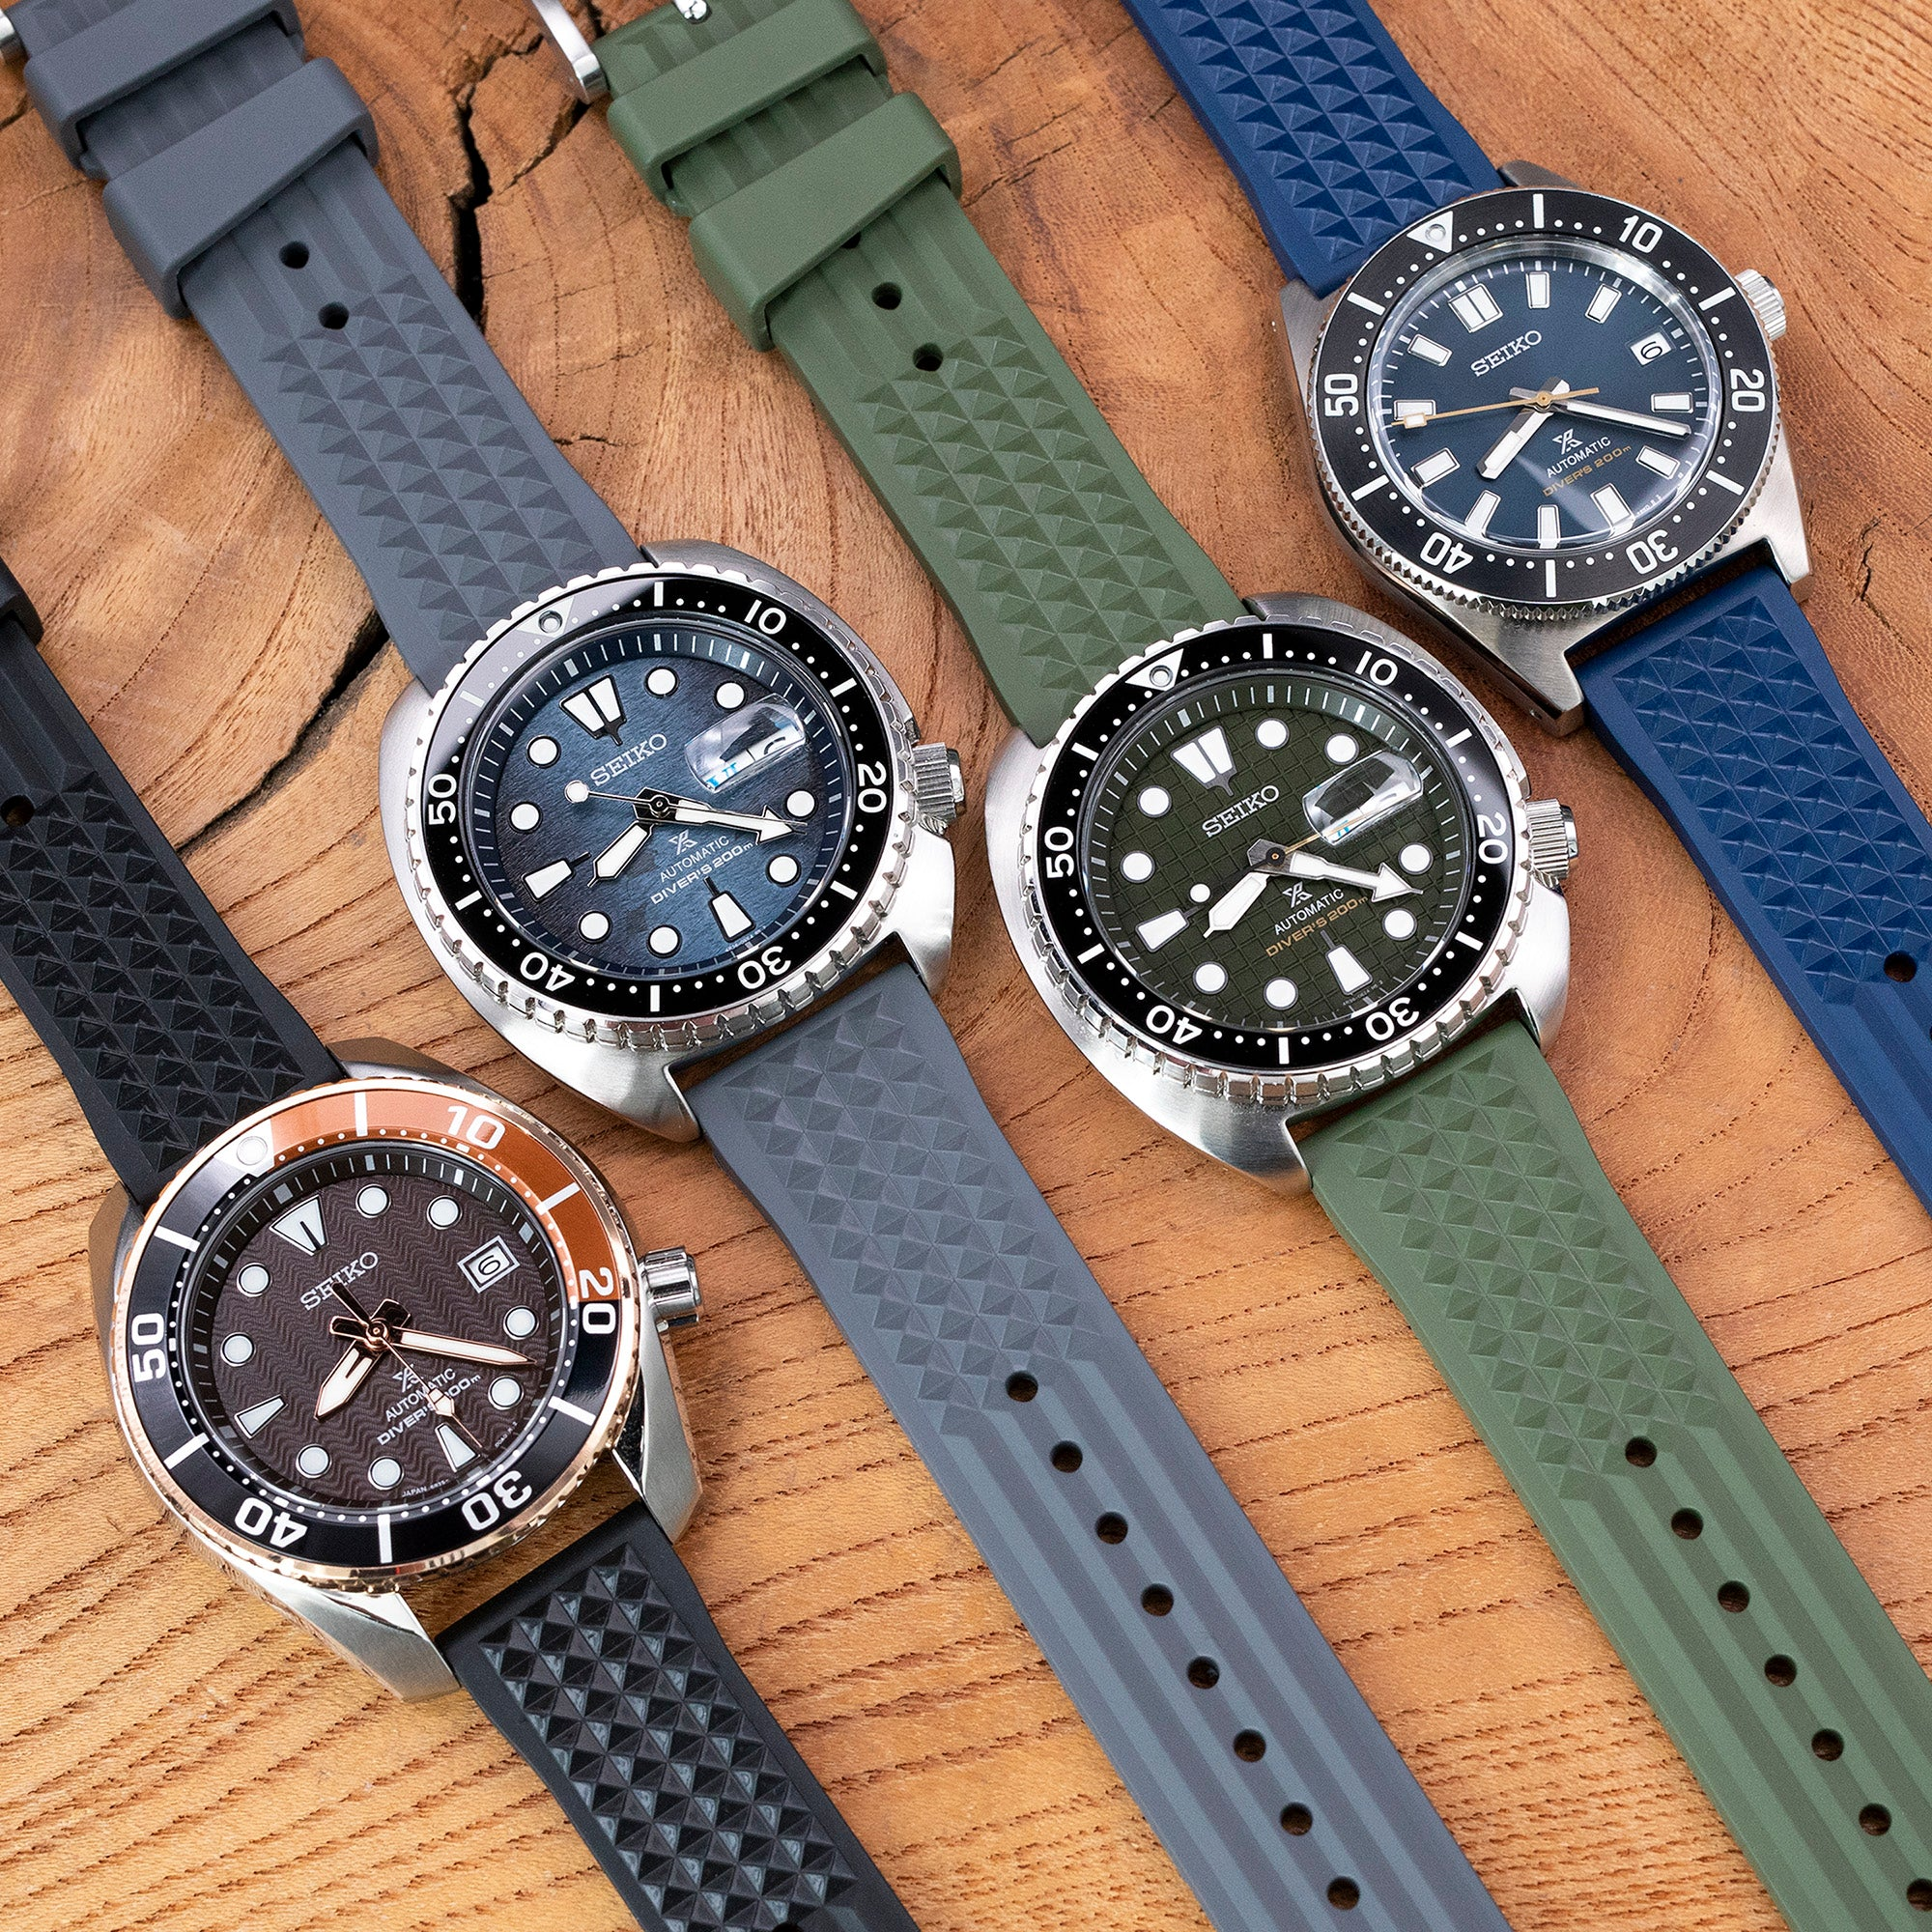 FKM 06 Waffle Rubber watch bands by Strapcode